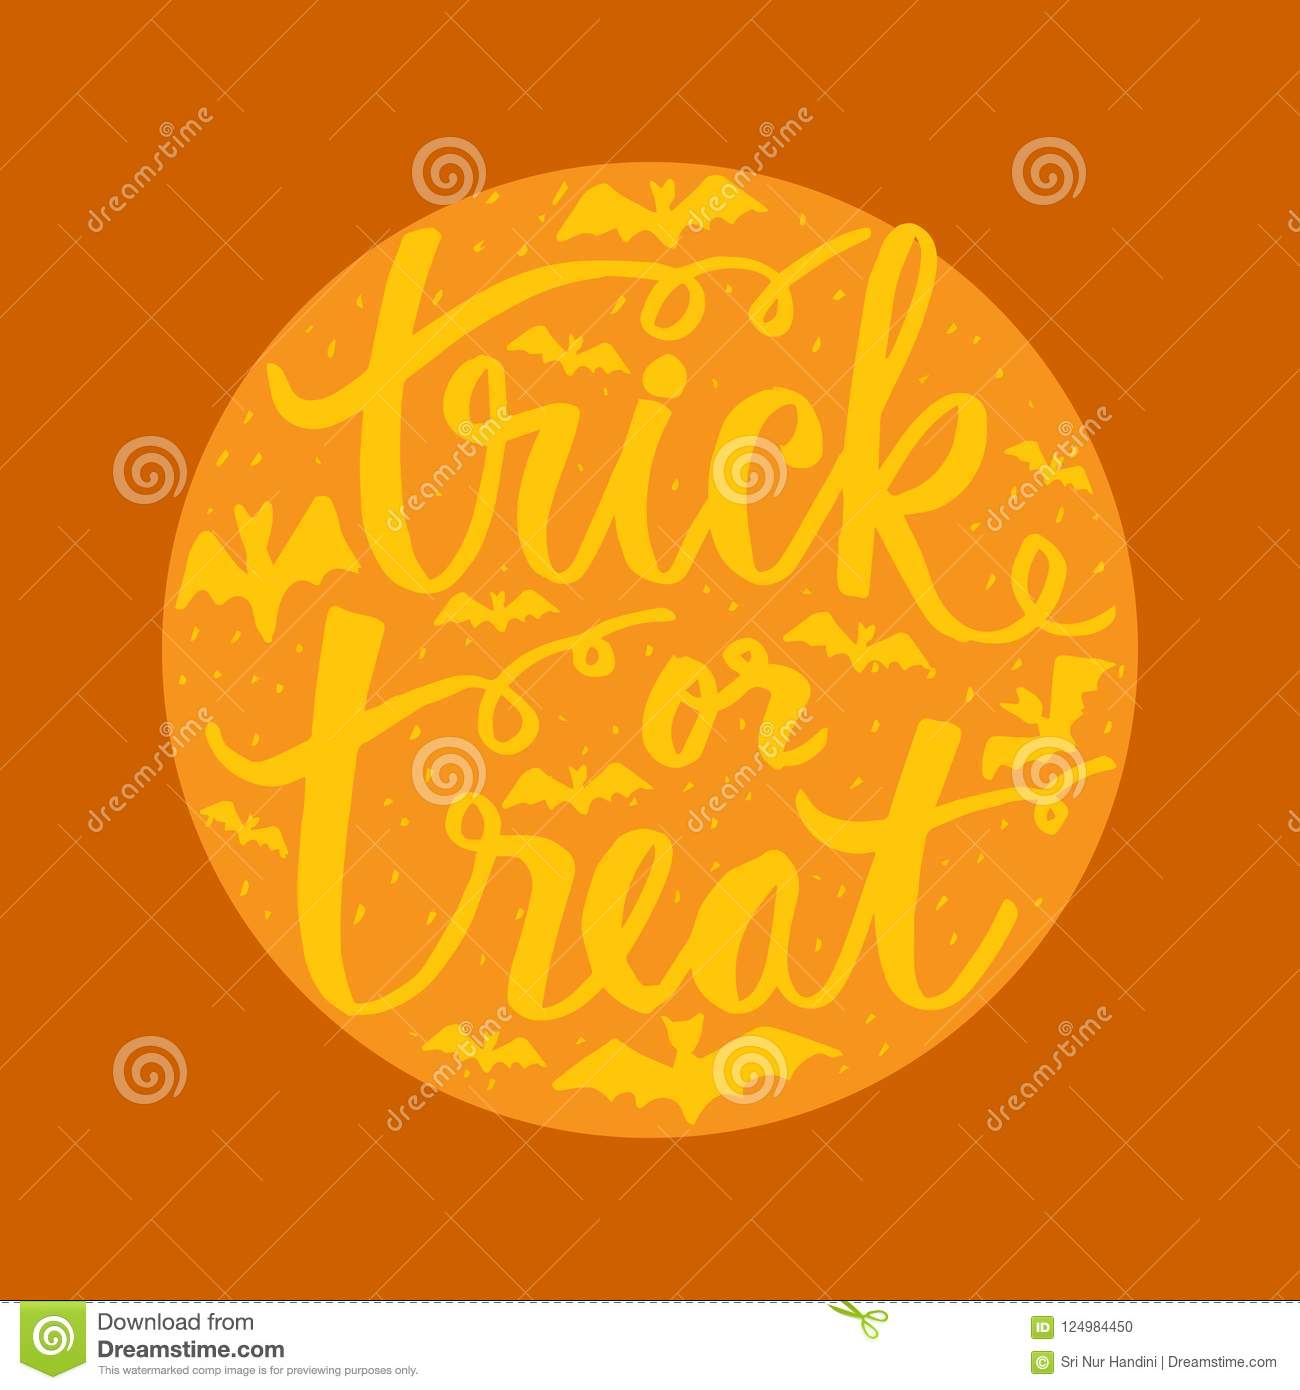 Trick or treat hand lettering stock illustration illustration of trick or treat hand lettering for greeting cards posters shirts design banners m4hsunfo